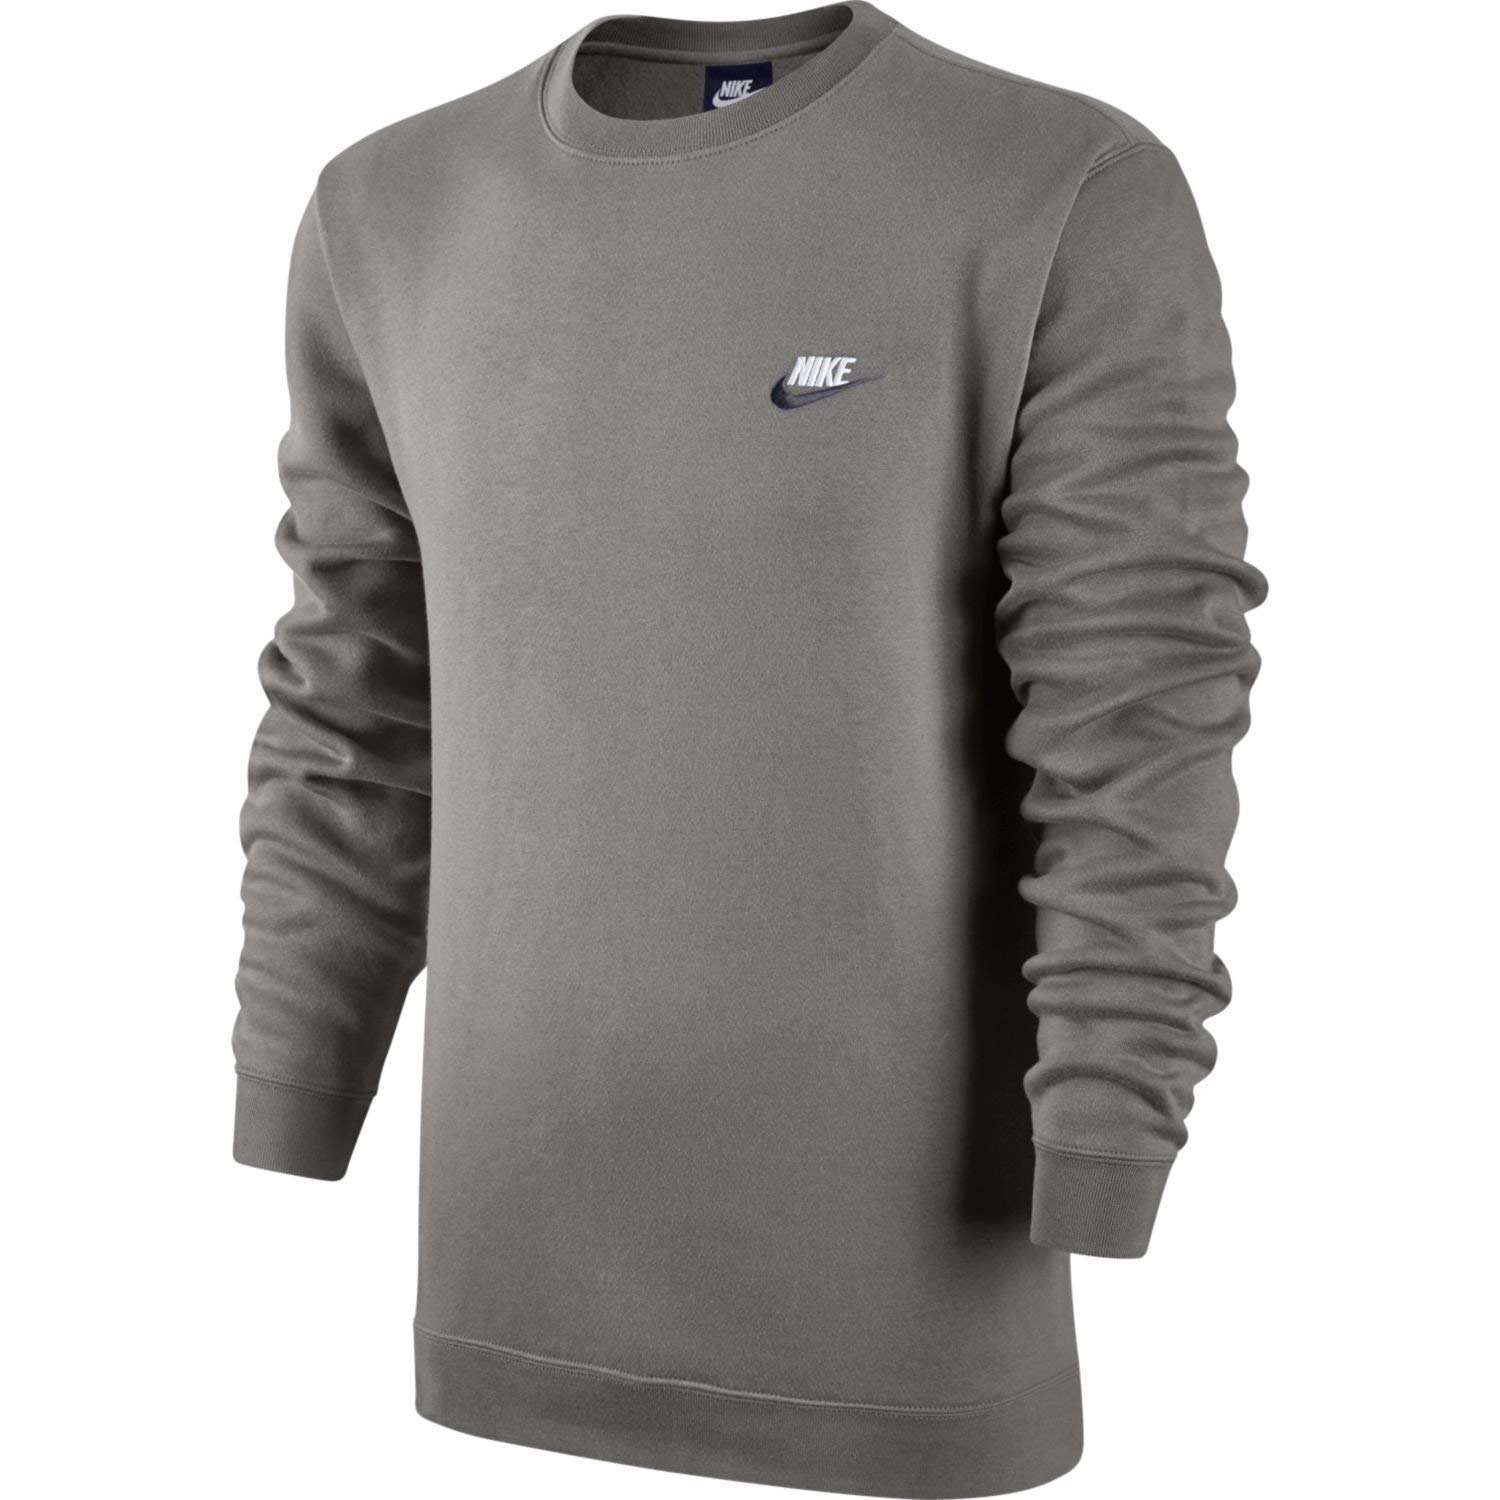 gris Heather Dark Obsidian blanc L Nike M NSW CRW FLC Club Sweatshirt Homme